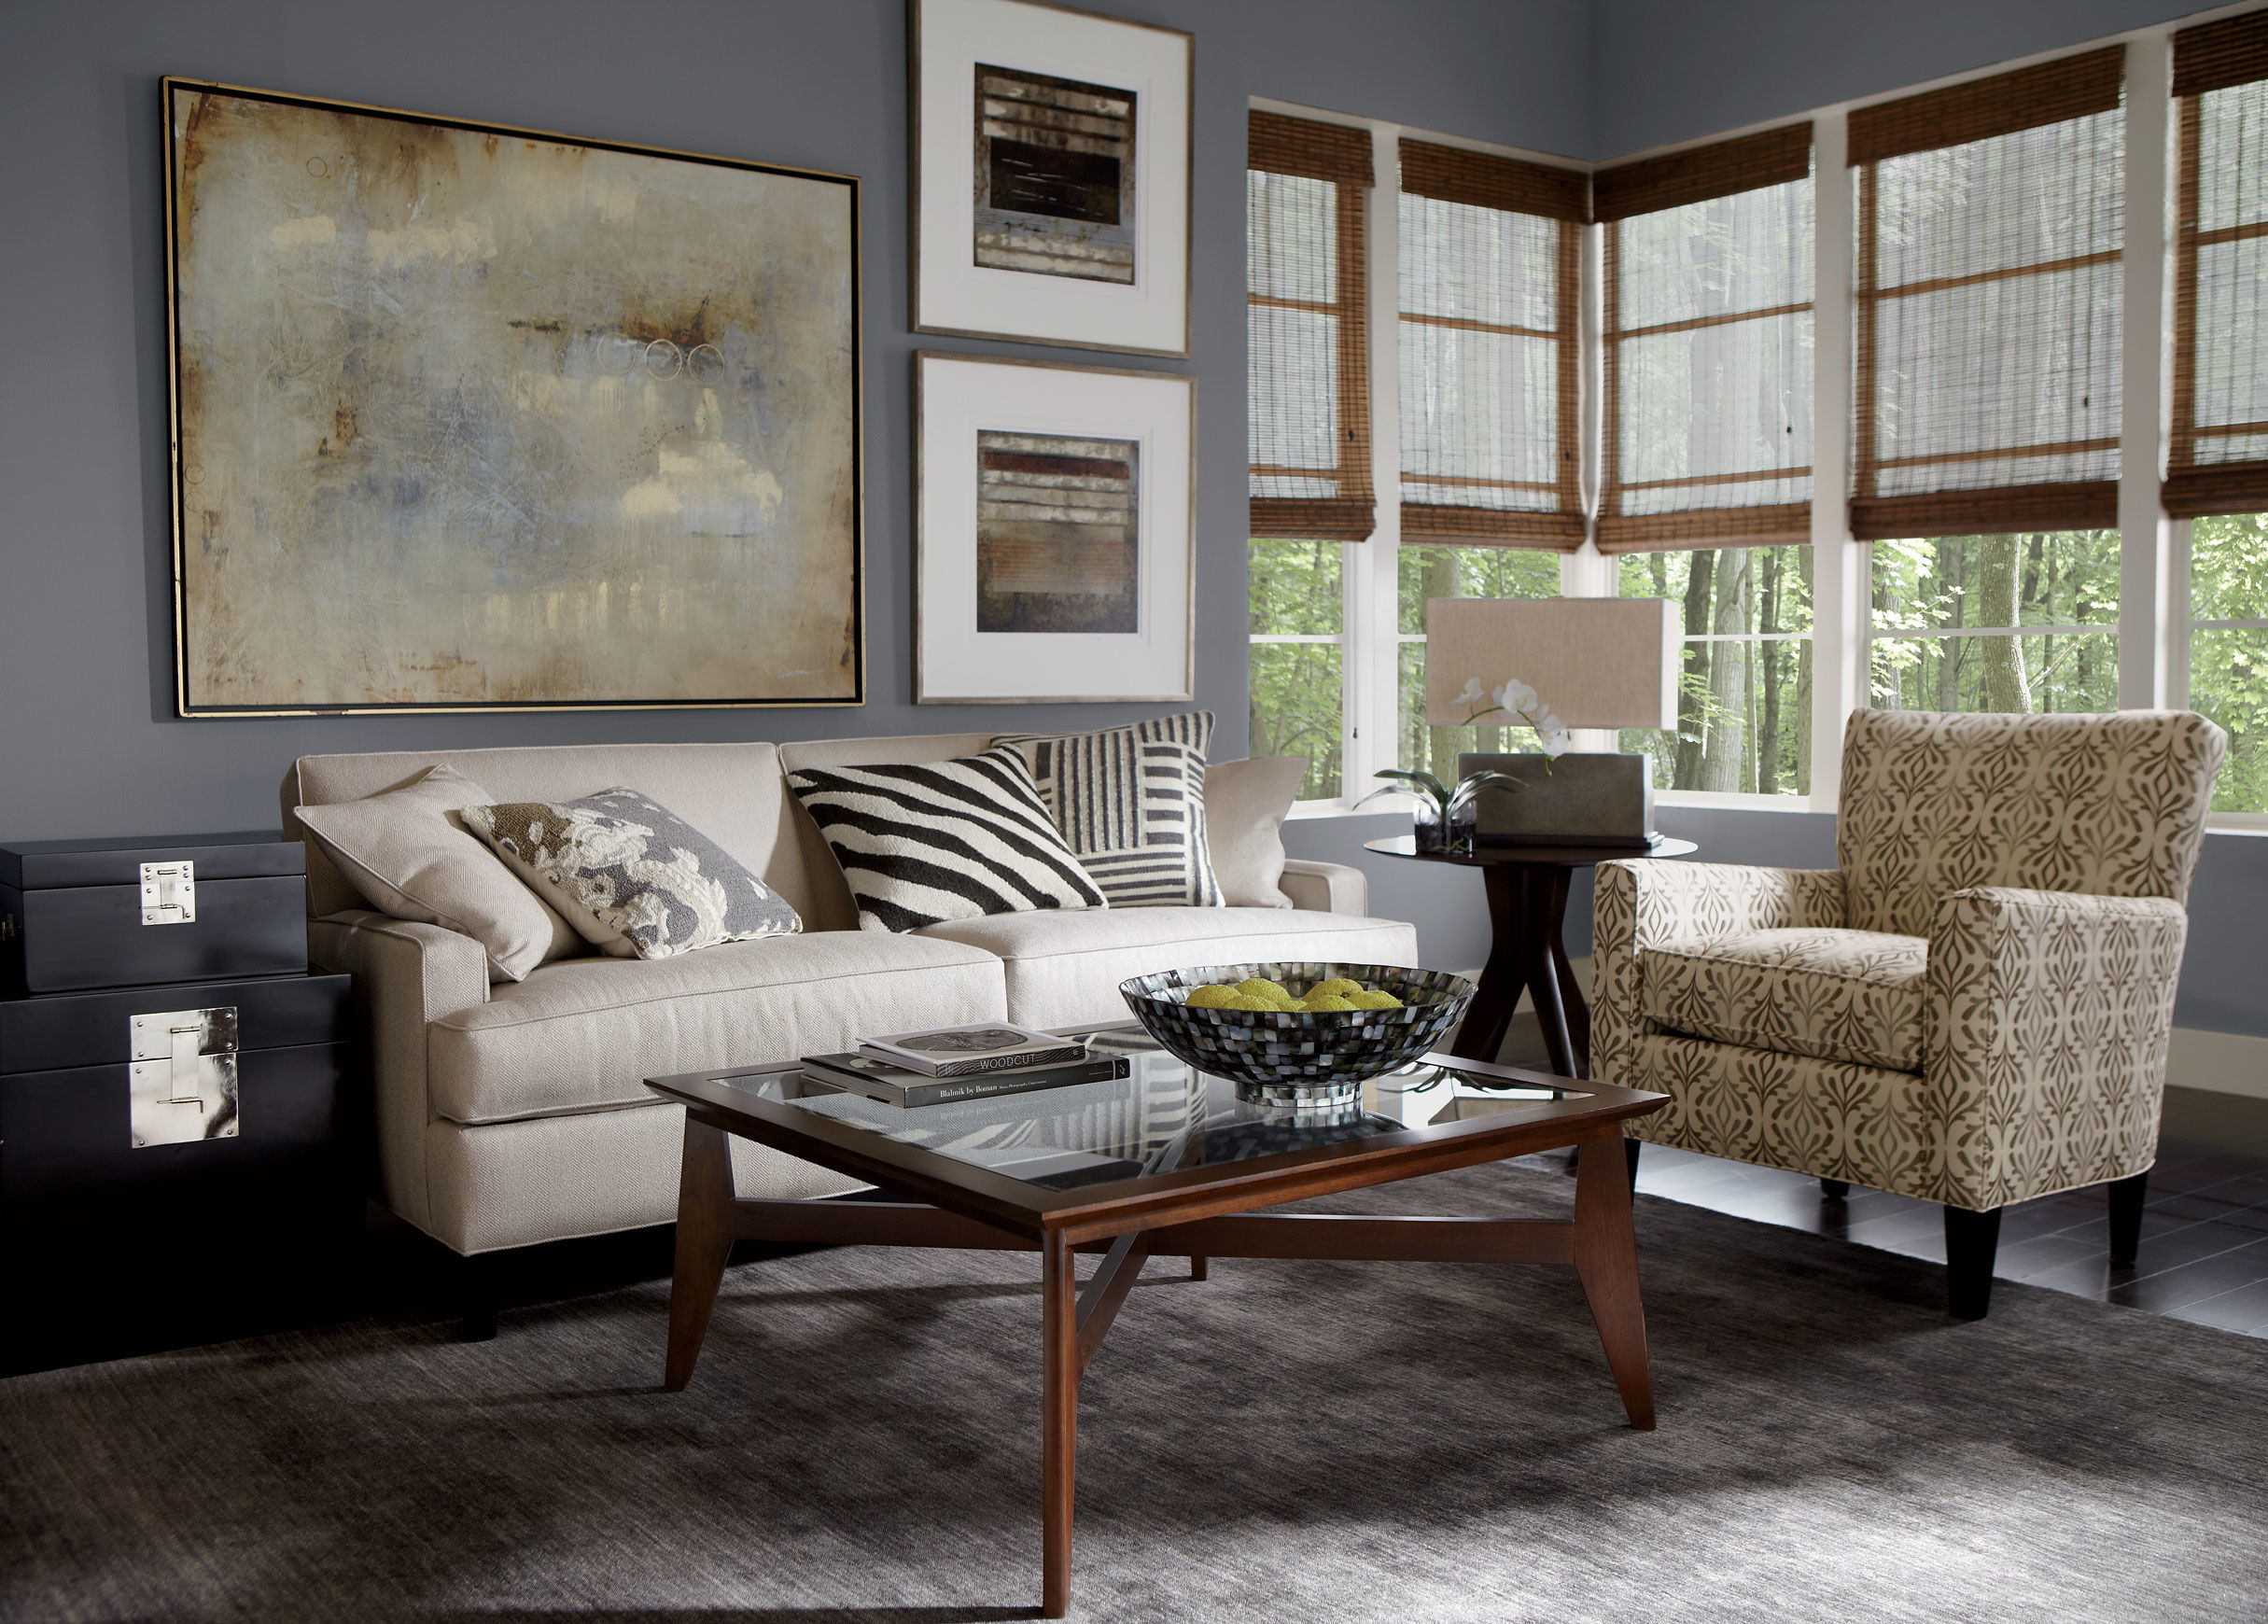 Ethan Allen Furniture ~ Ethan allen leather furniture for charming and comfortable